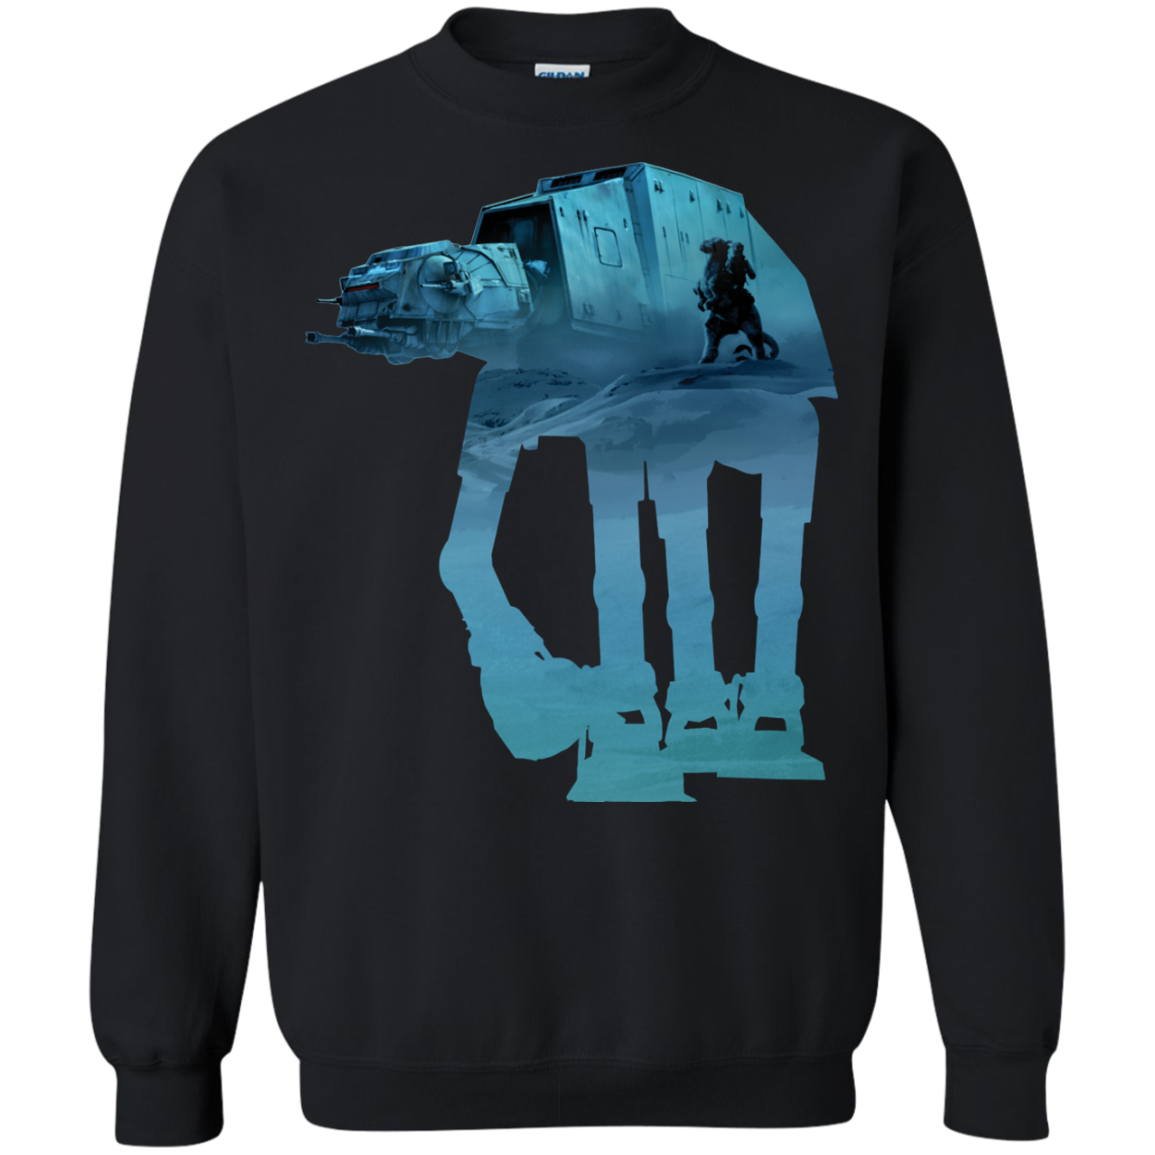 AT-AT on Hoth Star Wars Shop Gifts T Shirts Hoodies Sweatshirts Tank Top - The Sun Cat